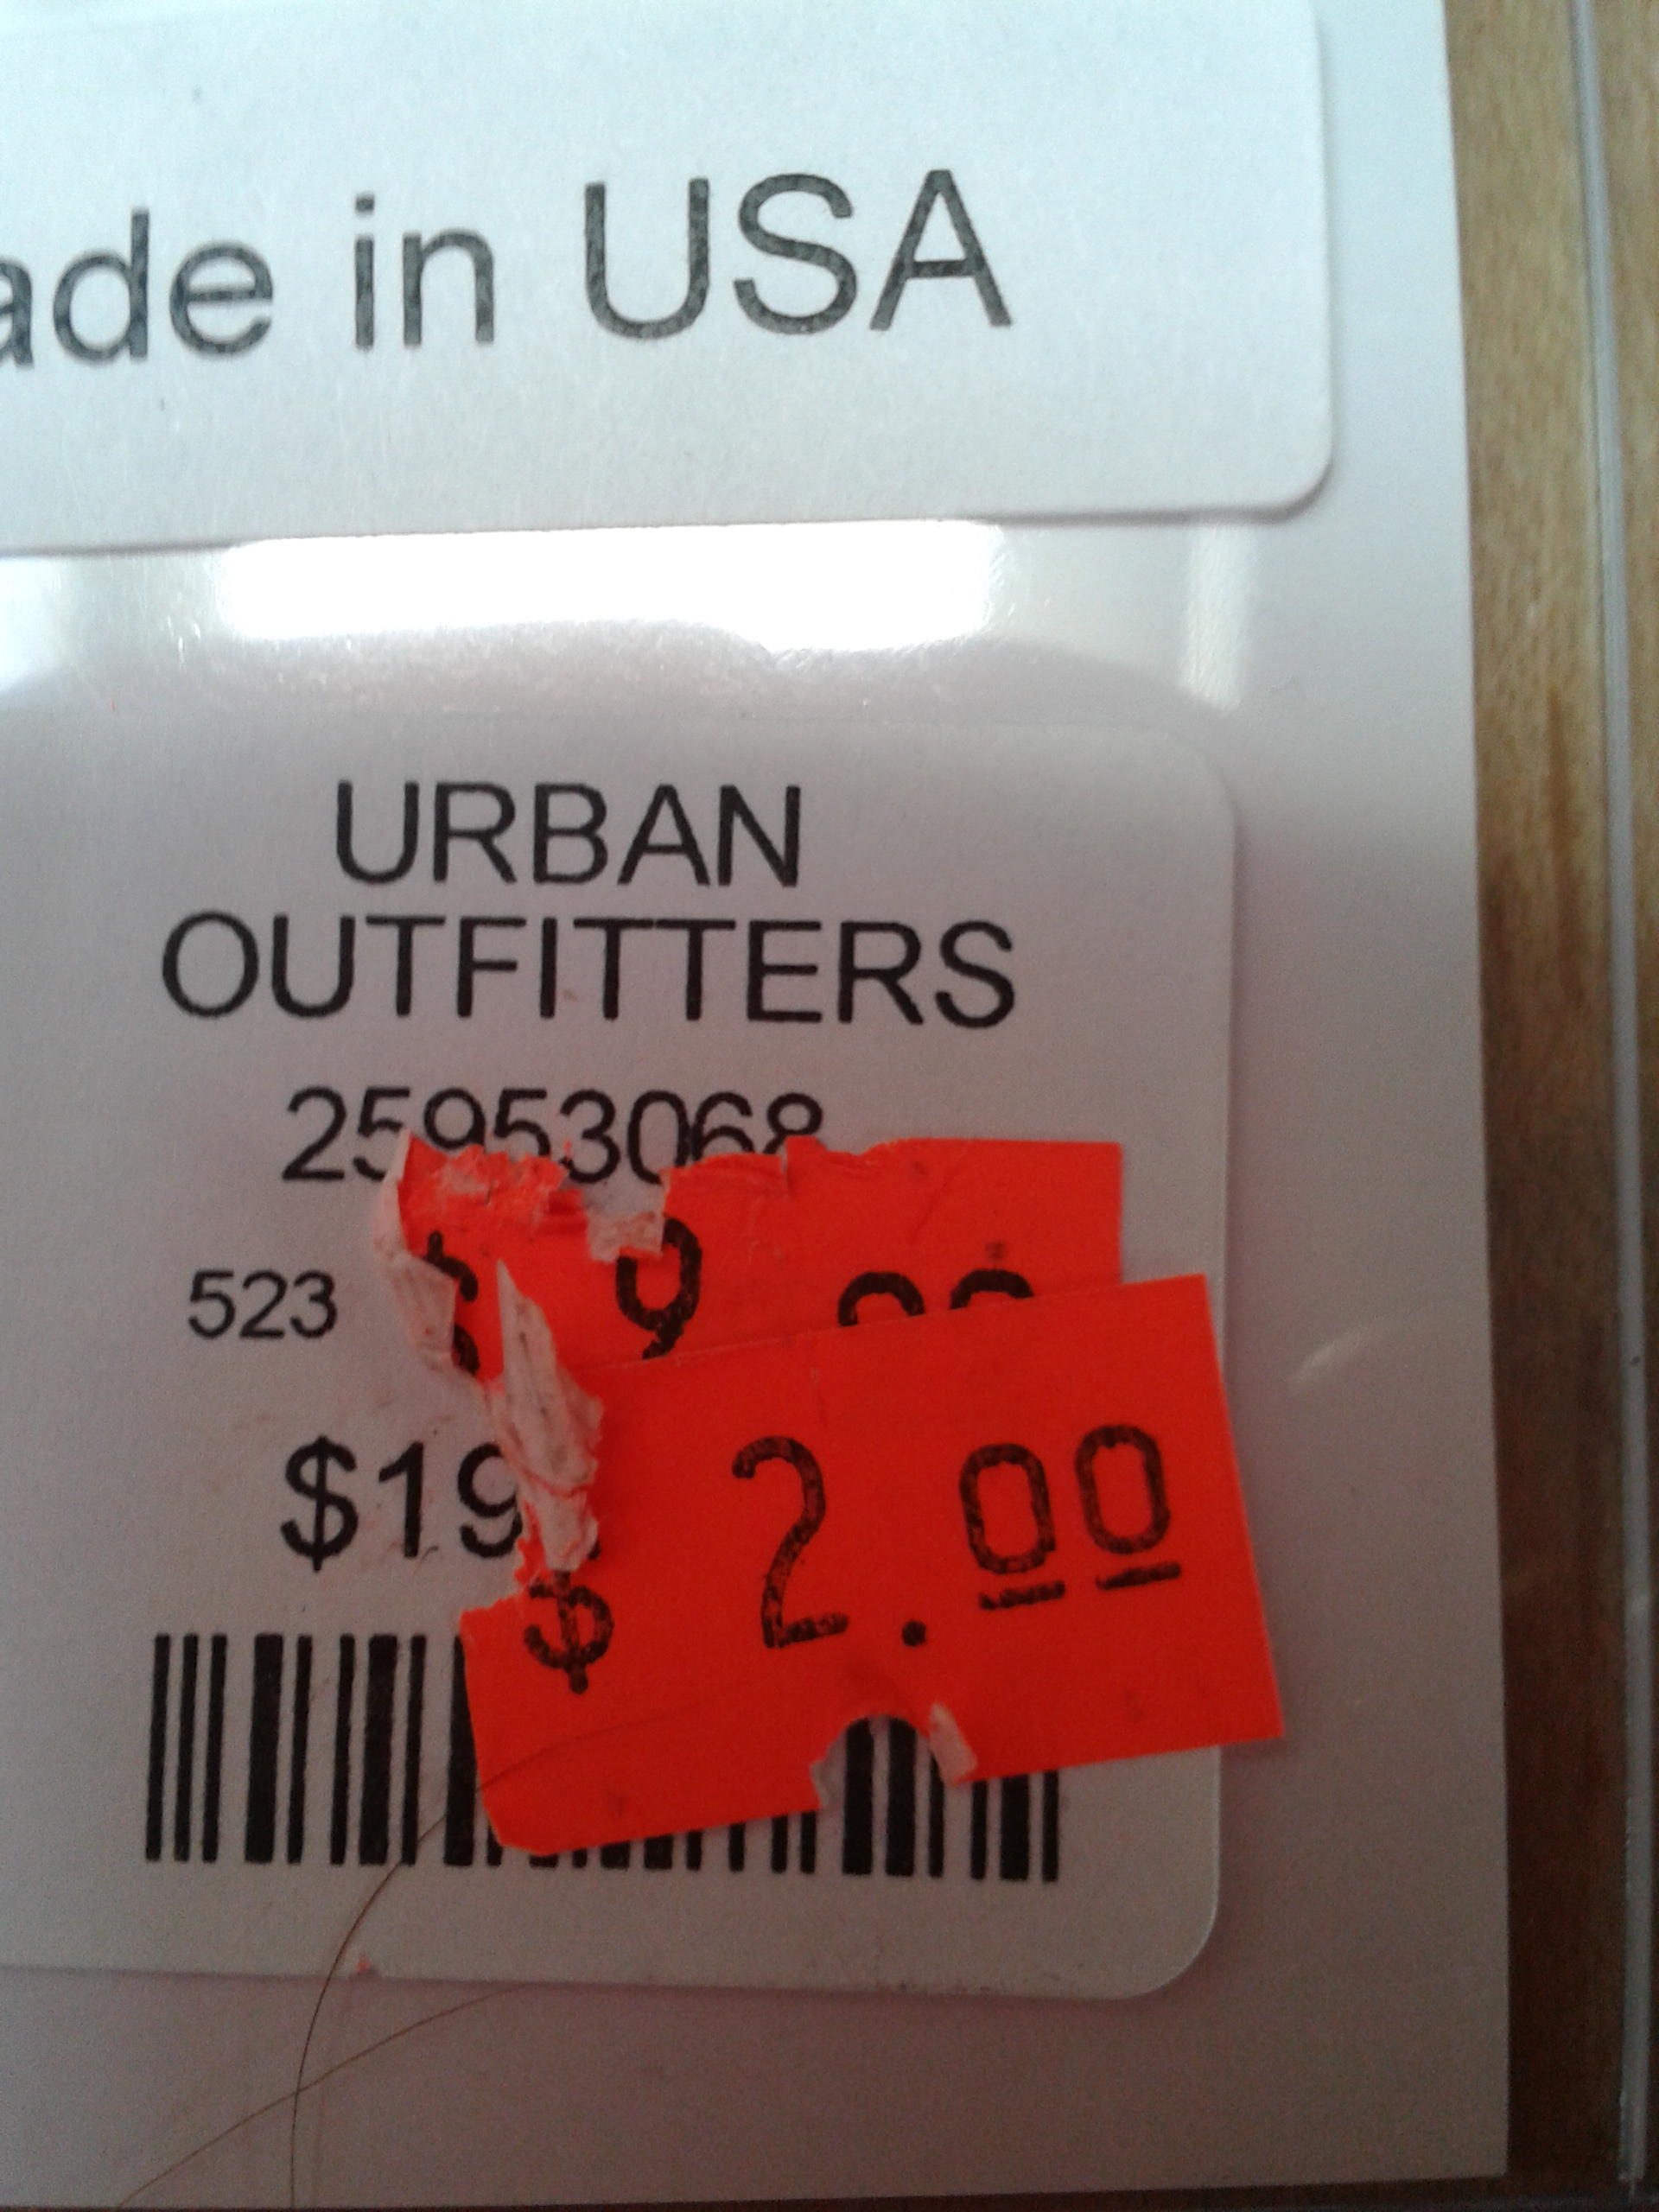 Urban Outfitters is a lifestyle retailer offering a mix of trendy women's and men's clothing, backpacks, beauty products, intimates, shoes, and hand-picked vintage clothing.